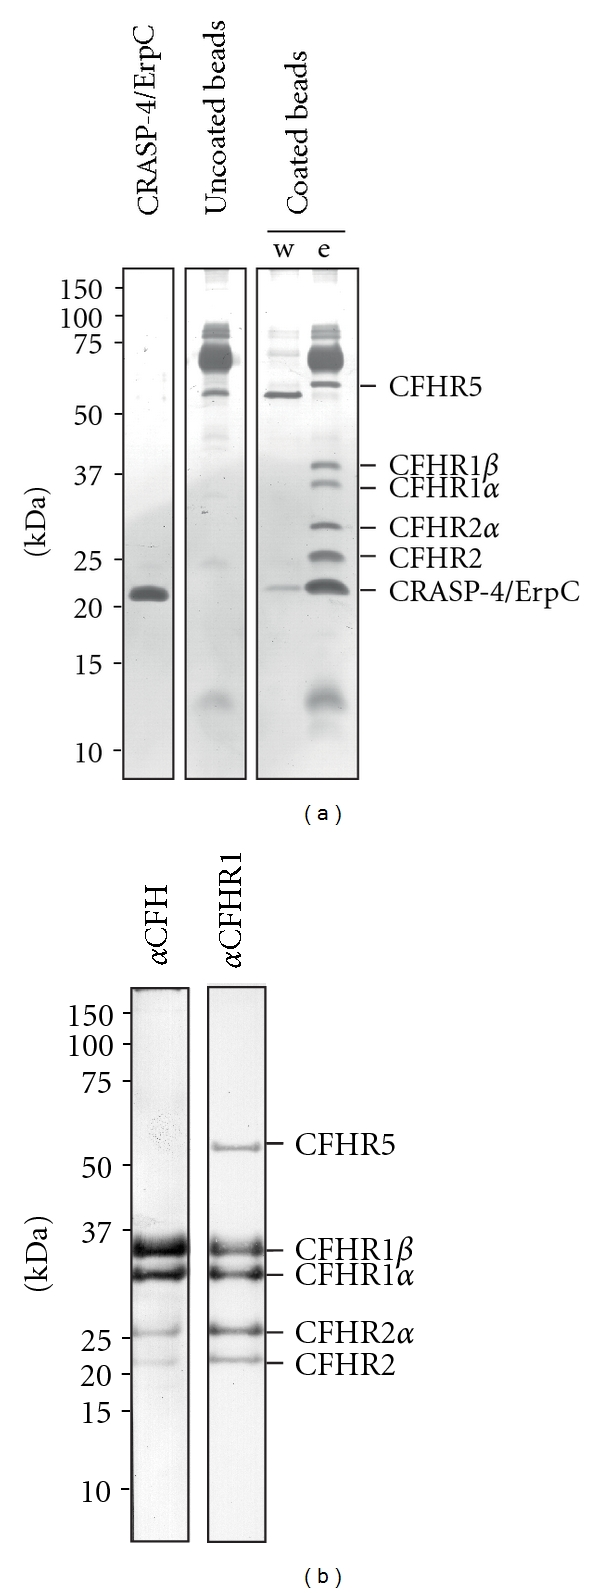 Identification of serum proteins that bind to recombinant CRASP-4. Recombinant, polyhistidine-tagged CRASP-4 was immobilized onto magnetic beads and incubated with NHS. Uncoated beads were also treated under the same conditions and used as a control to identify nonspecific binding of serum proteins. After extensive washing, bound proteins were eluted with 100mM glycine-HCl (pH 2.0) and the eluate fractions were separated by SDS-PAGE under nonreducing conditions. (a) Silver stain of a gel loaded with purified polyhistidine-tagged CRASP-4 (1 μ g), eluate fraction of the uncoated beads, and the final wash and eluate fraction of CRASP-4-coated beads. (b) Western blot analysis of the eluate fraction of CRASP-4-coated beads using a polyclonal anti-CFH or a polyclonal anti-CFHR1 antiserum. Mobilities of molecular mass standards are indicated to the left.